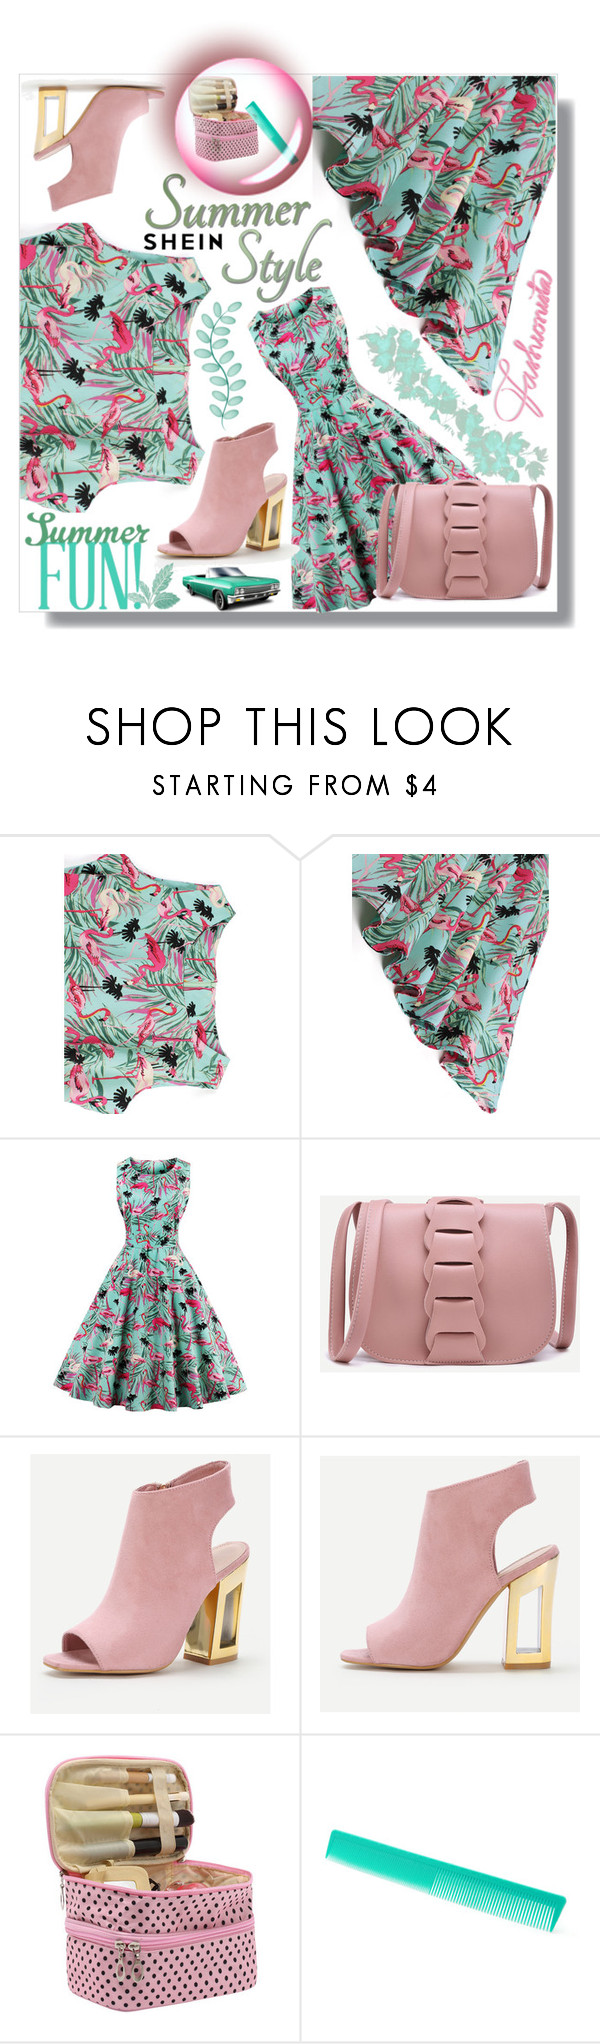 """""""SheIn XXXVI/1"""" by s-o-polyvore ❤ liked on Polyvore"""